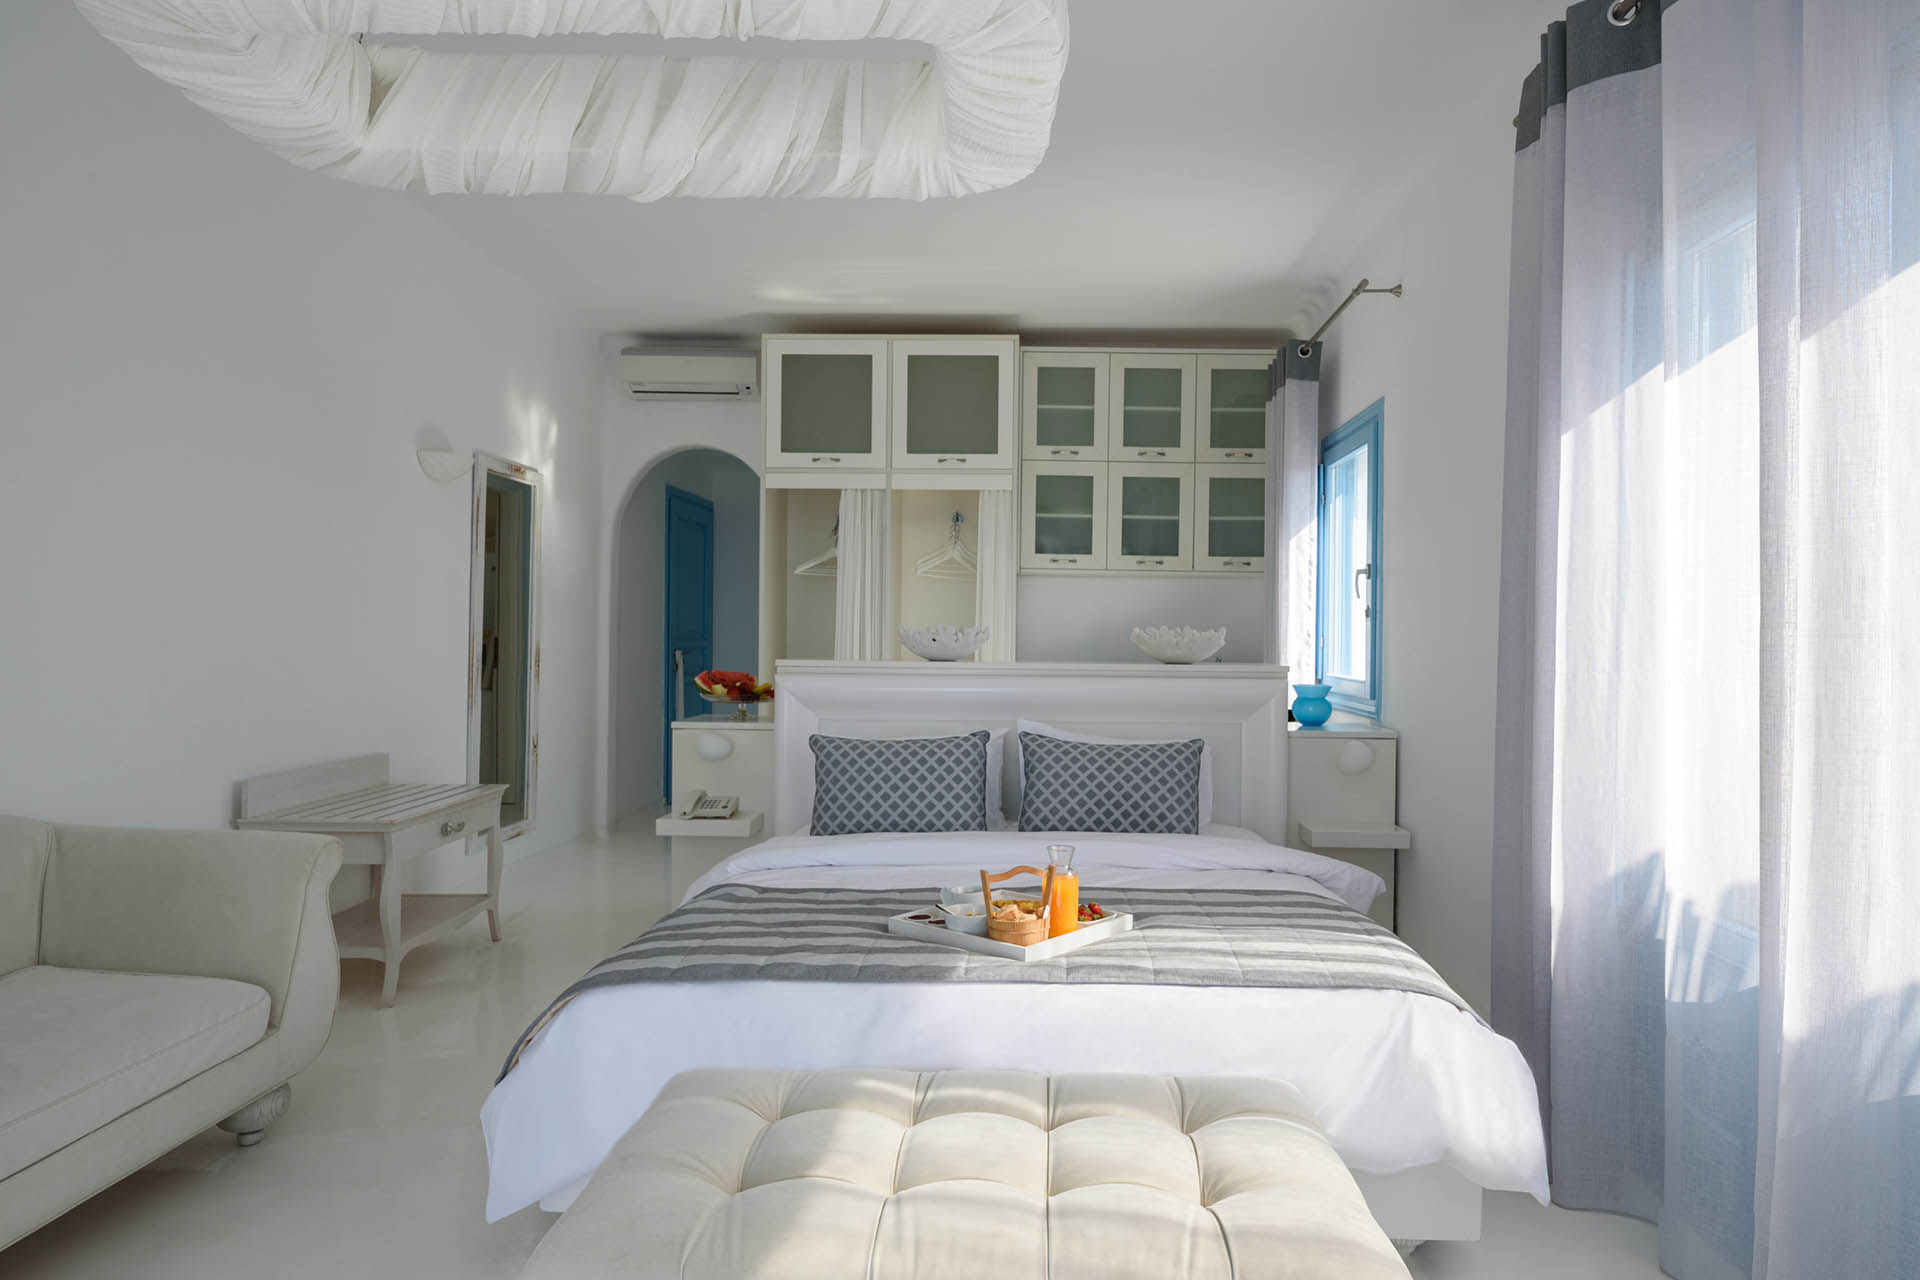 Kalestesia Suites - Deluxe suite open plan bedroom